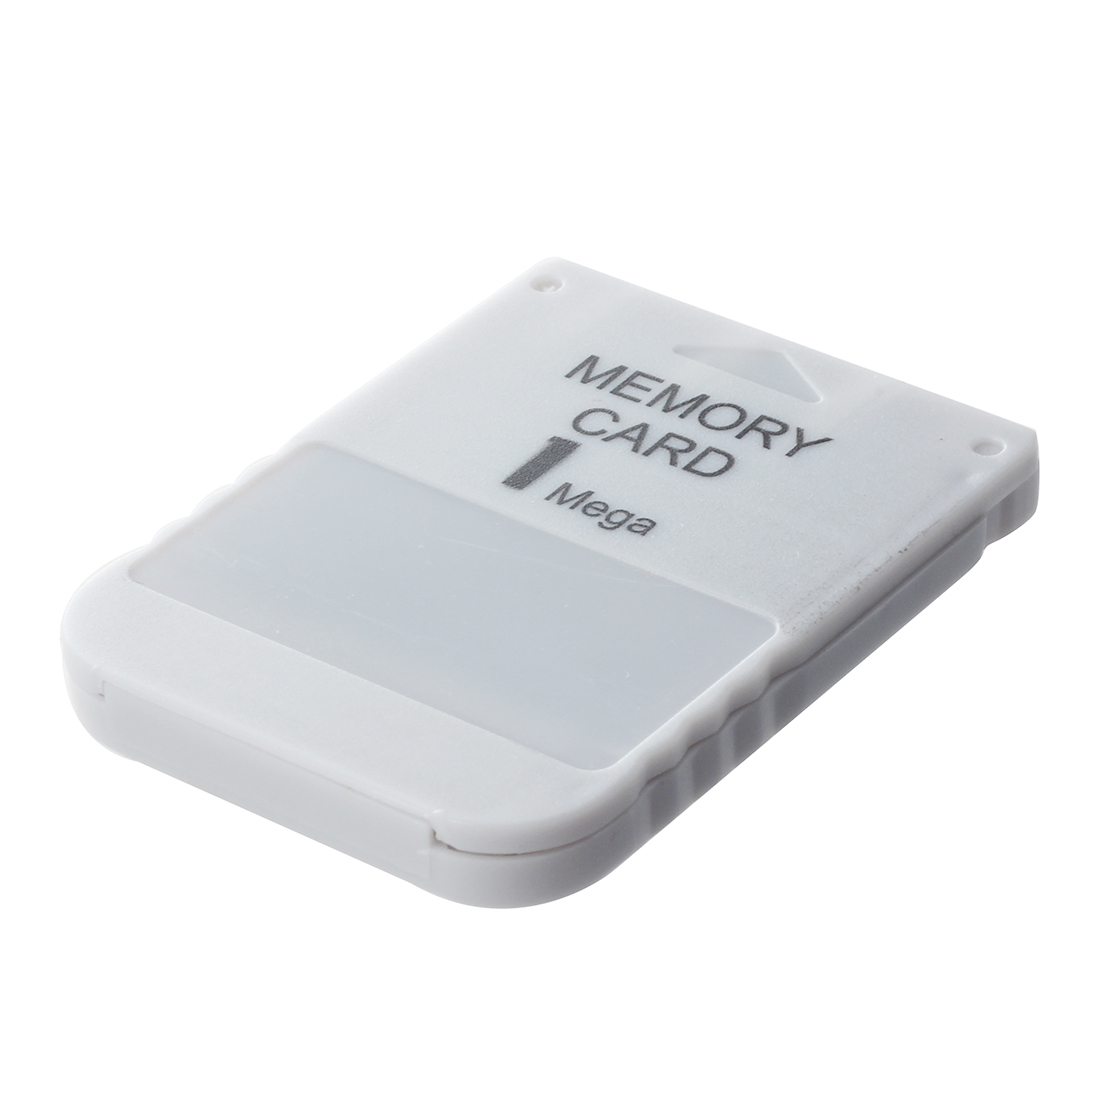 Specification:Color: White. * Size: 55*41*6mm. * Net weight: 10g. * Packing content:1x Memory Card For Playstation 1 One PS1 PSX Game